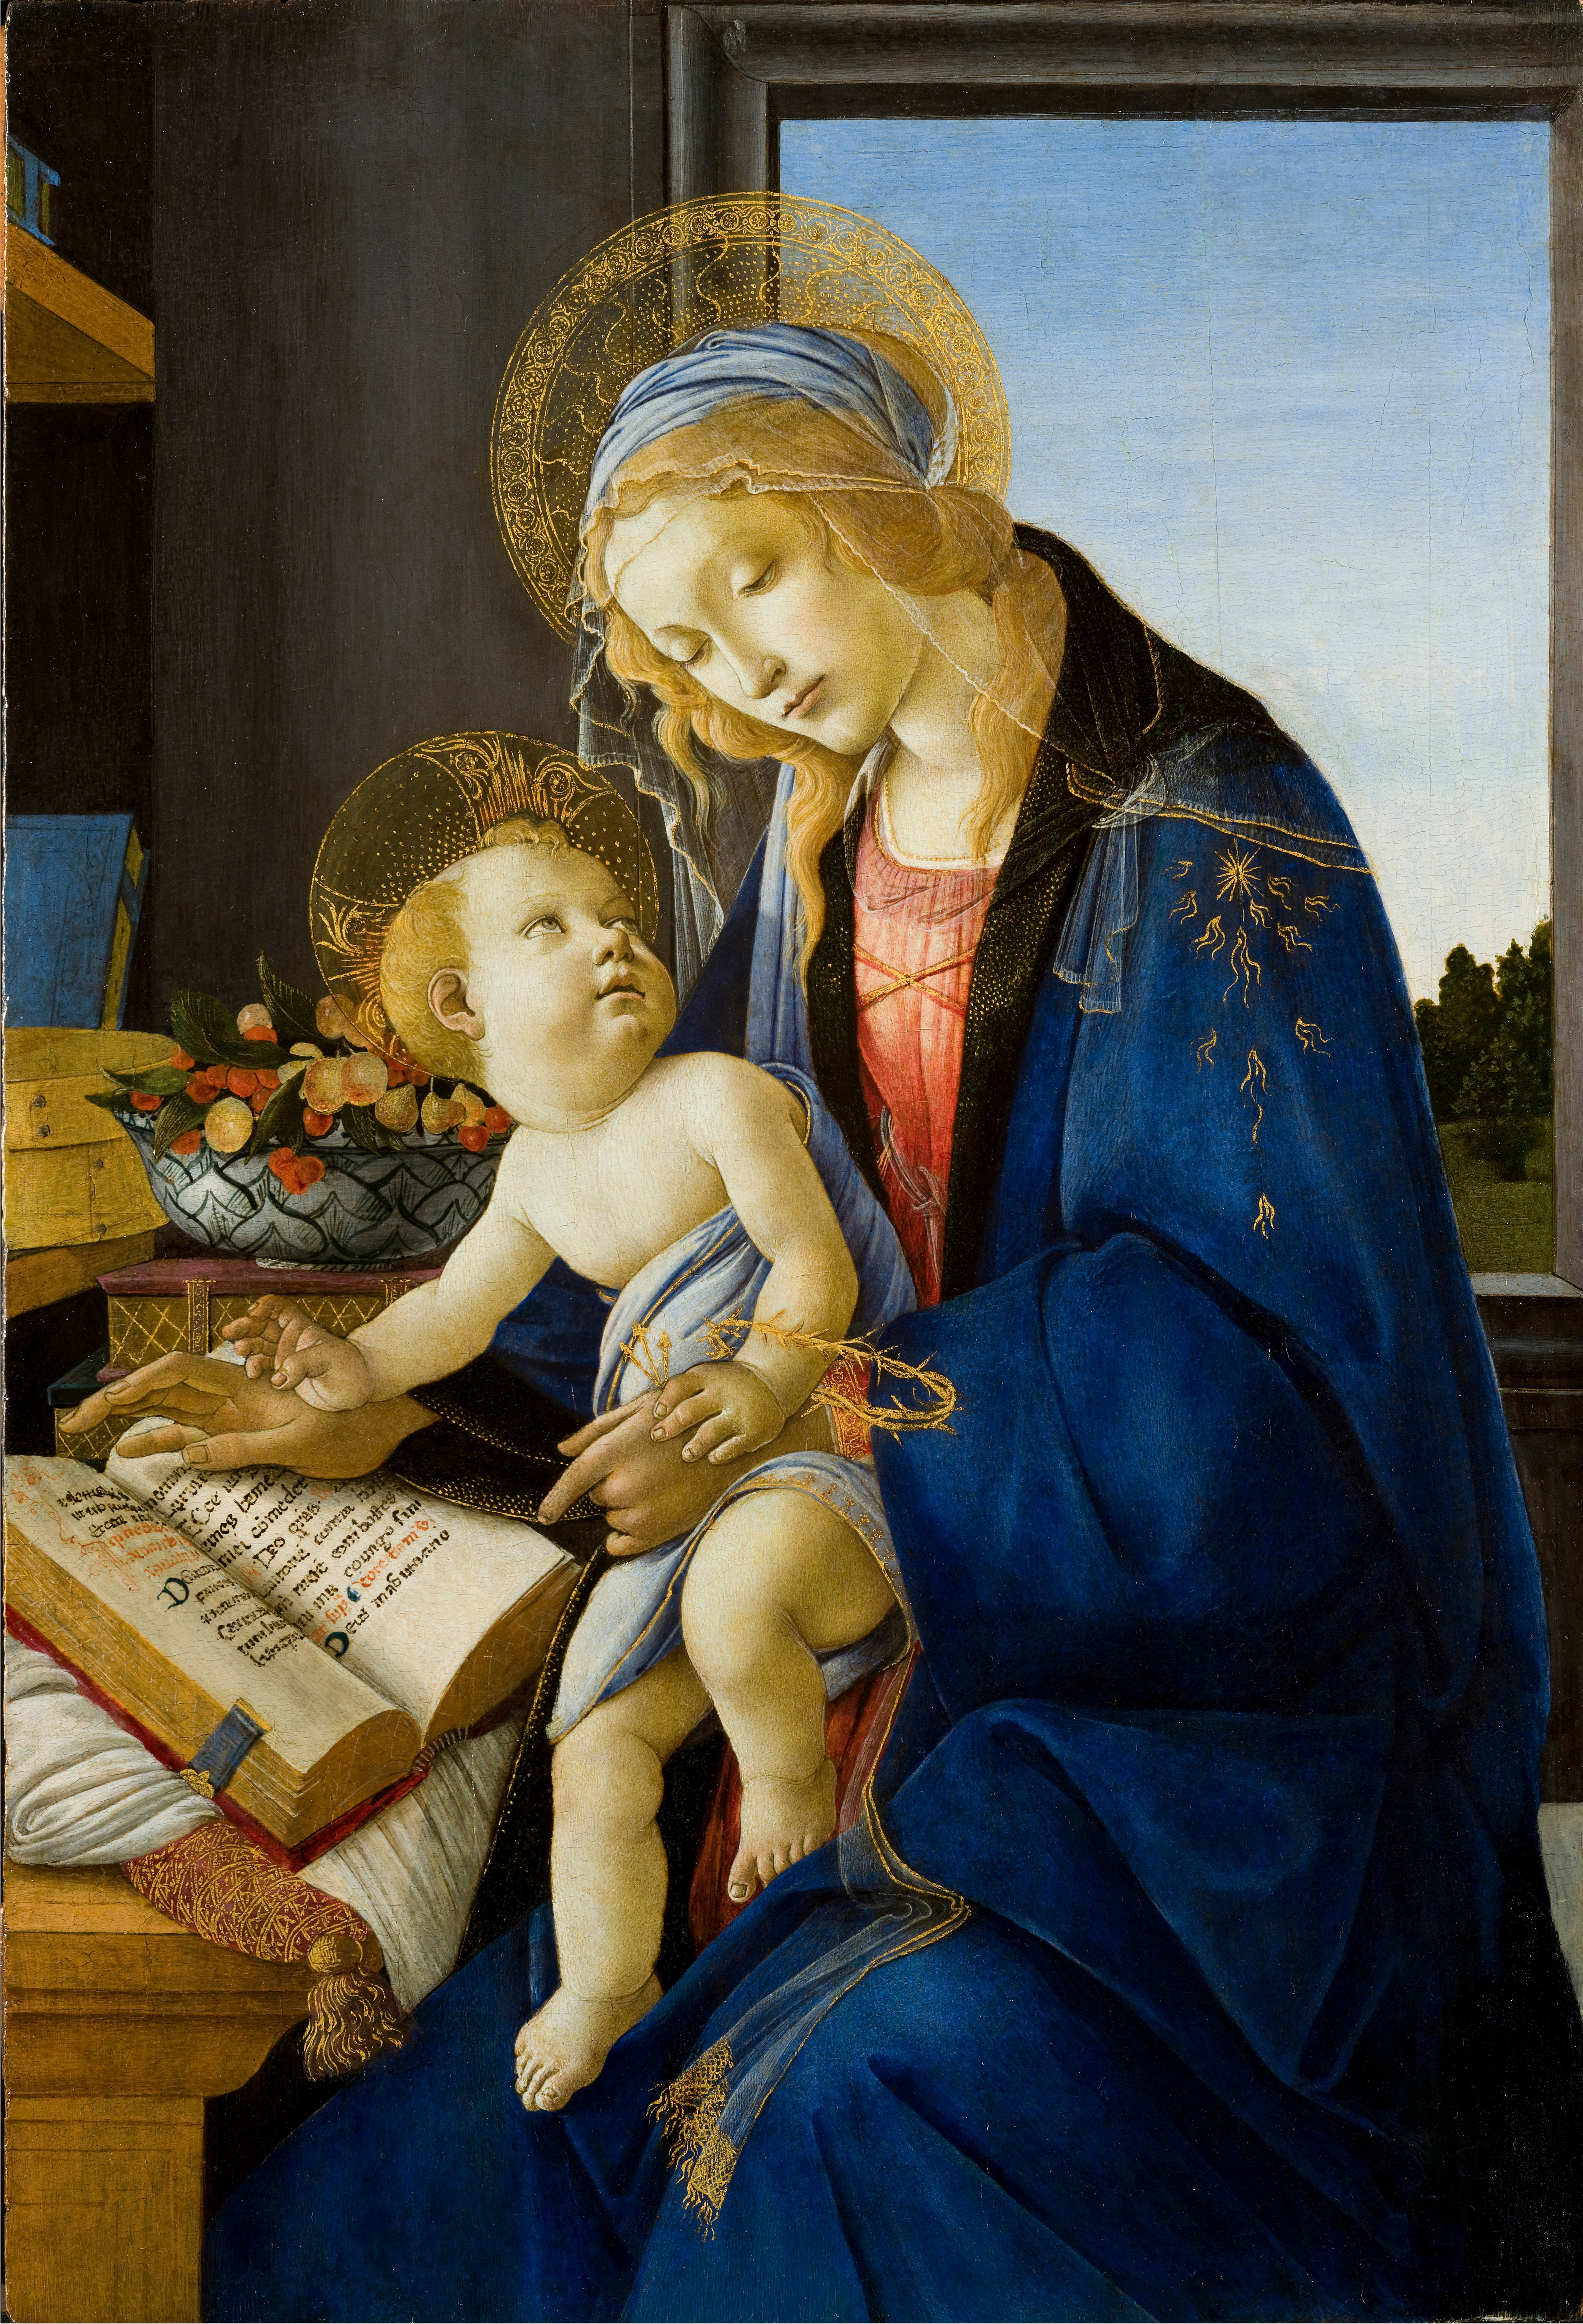 The Madonna of the Book, or the Madonna del Libro, is a small painting by the Italian Renaissance artist Sandro Botticelli, and is preserved in the Poldi Pezzoli Museum in Milan. The painting is executed in tempera on panel. It dates from between 1480 and 1483.